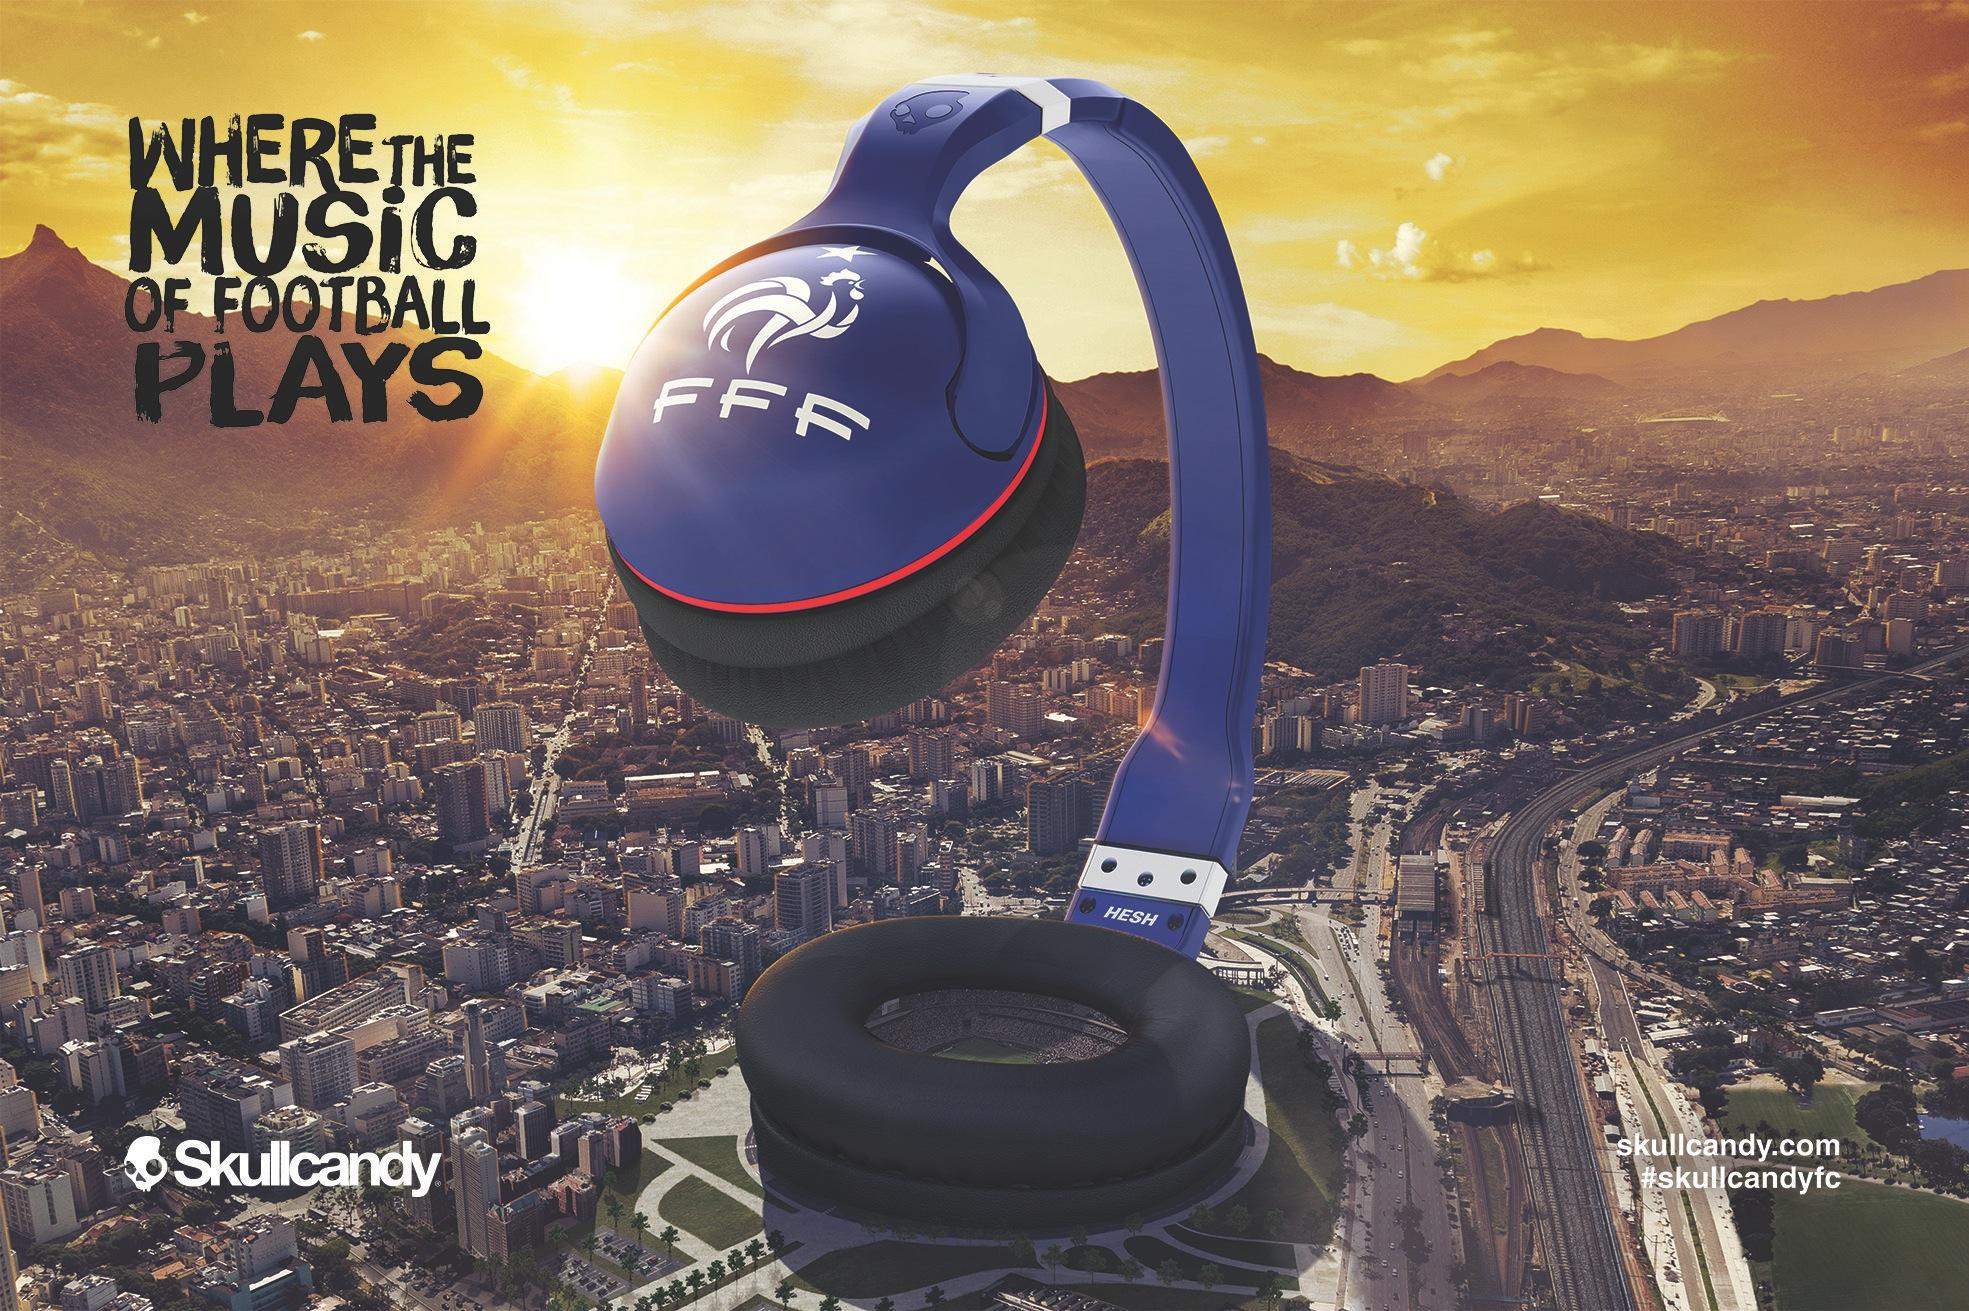 Skullcandy Print Ad -  Where the music of football plays, 3